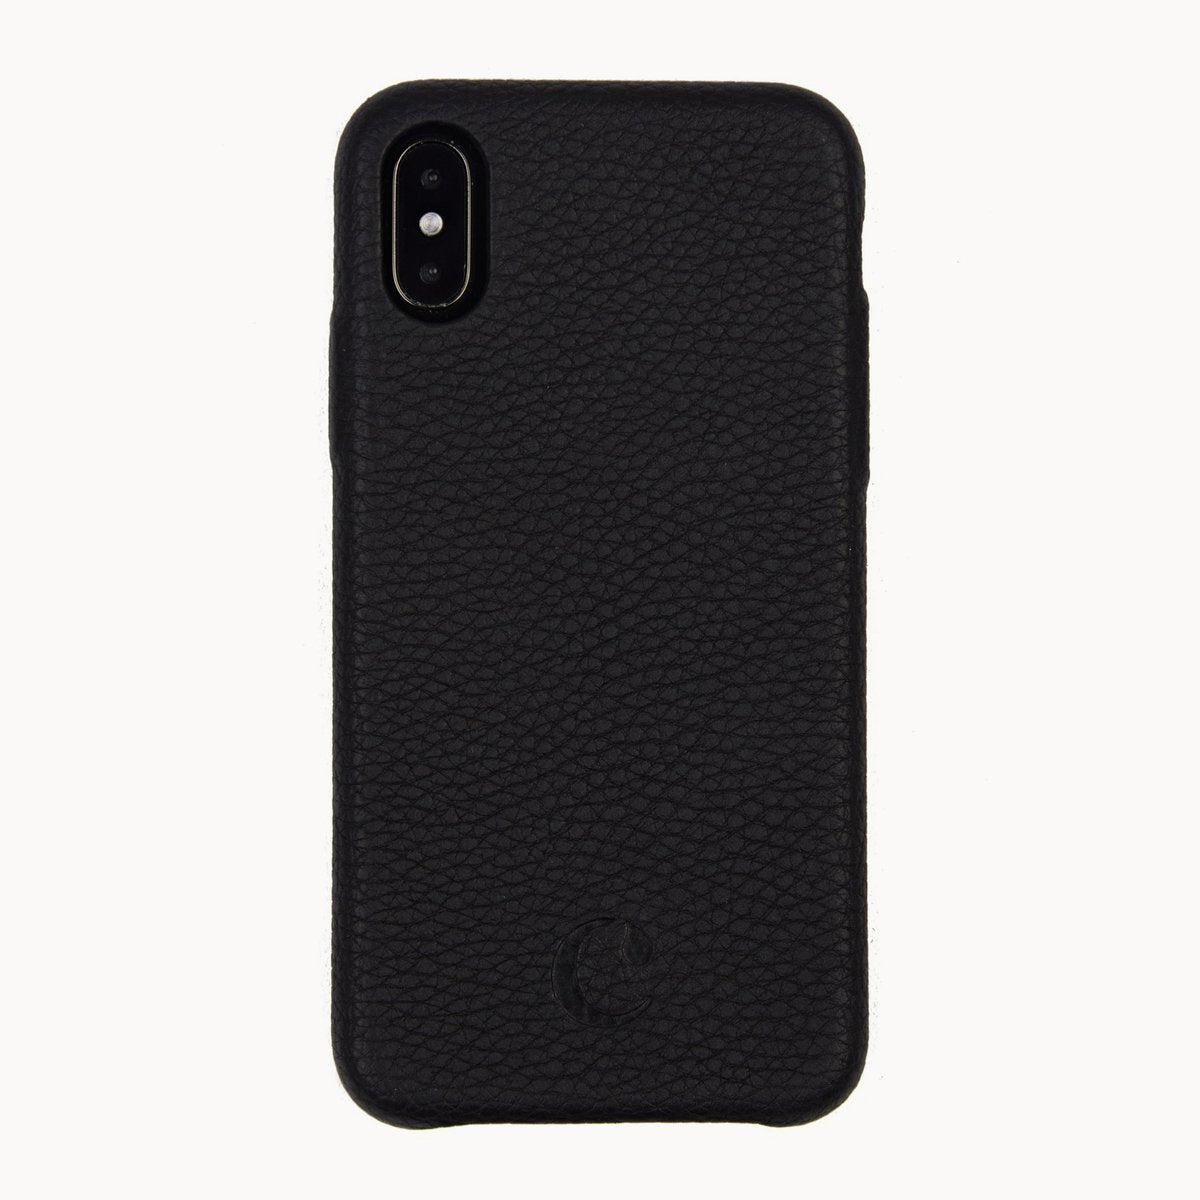 IPHONE X/XS ANTIMICROBIAL CASE